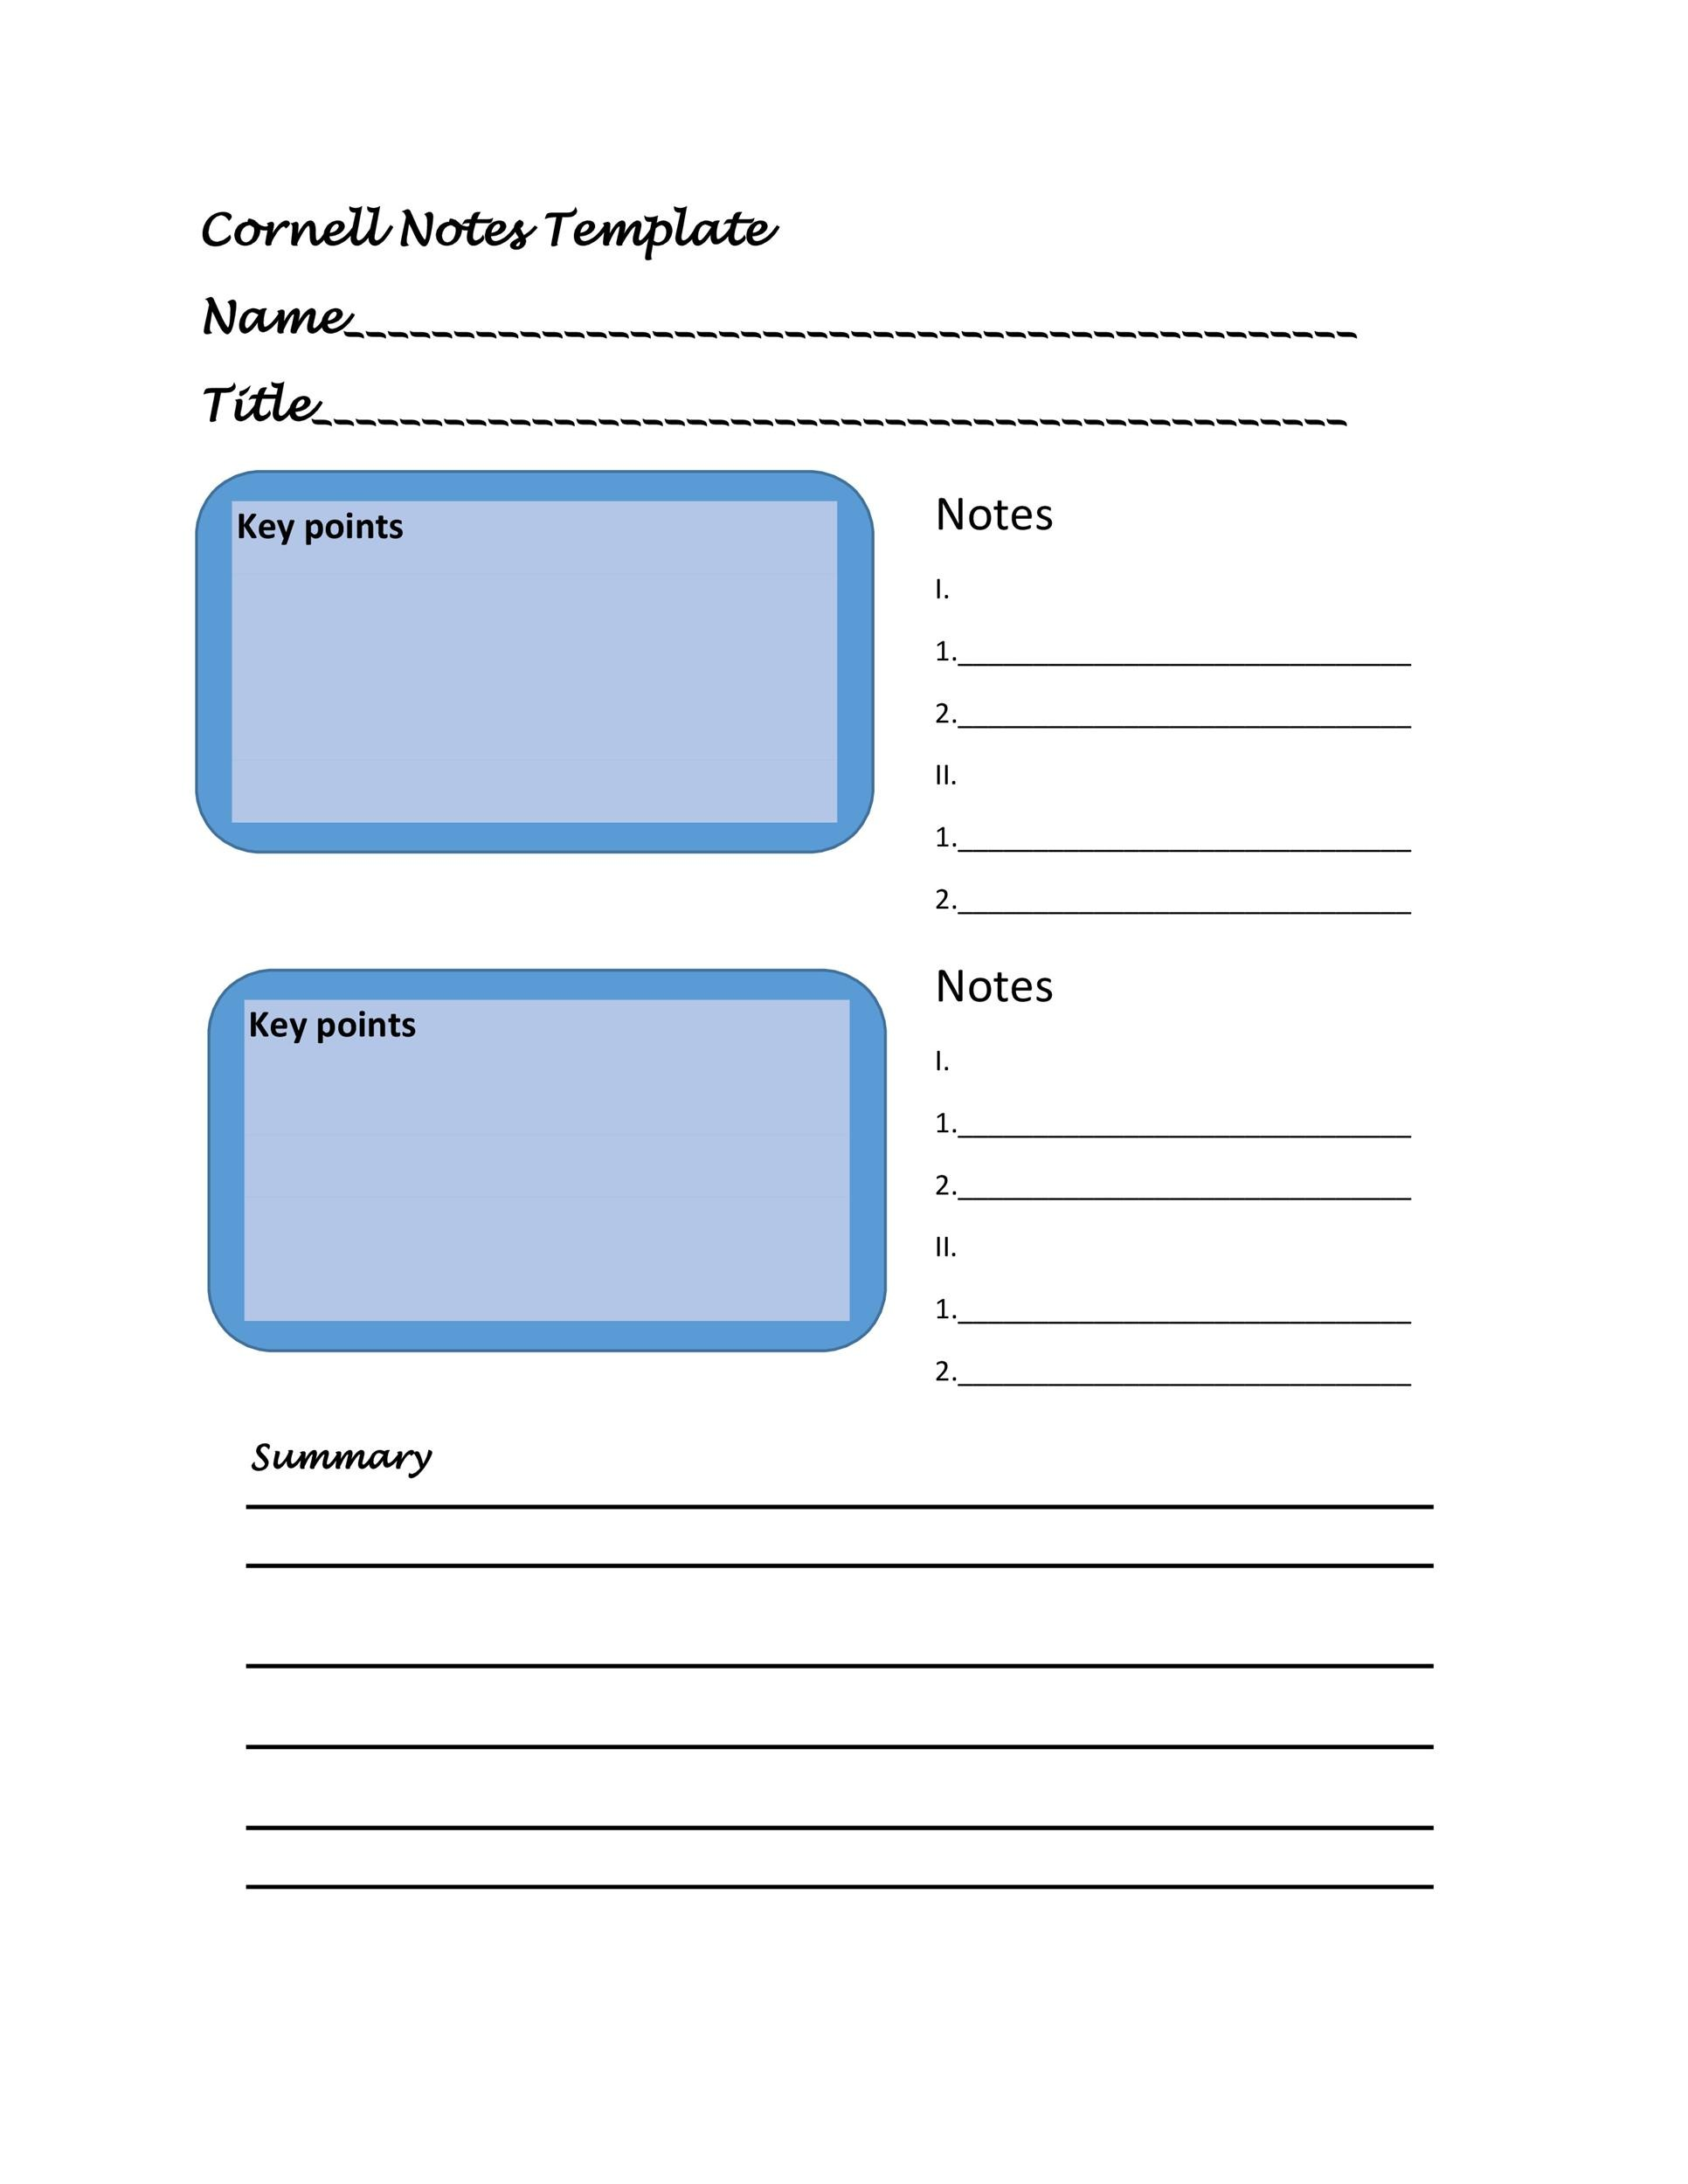 Cornell Notes Template 35